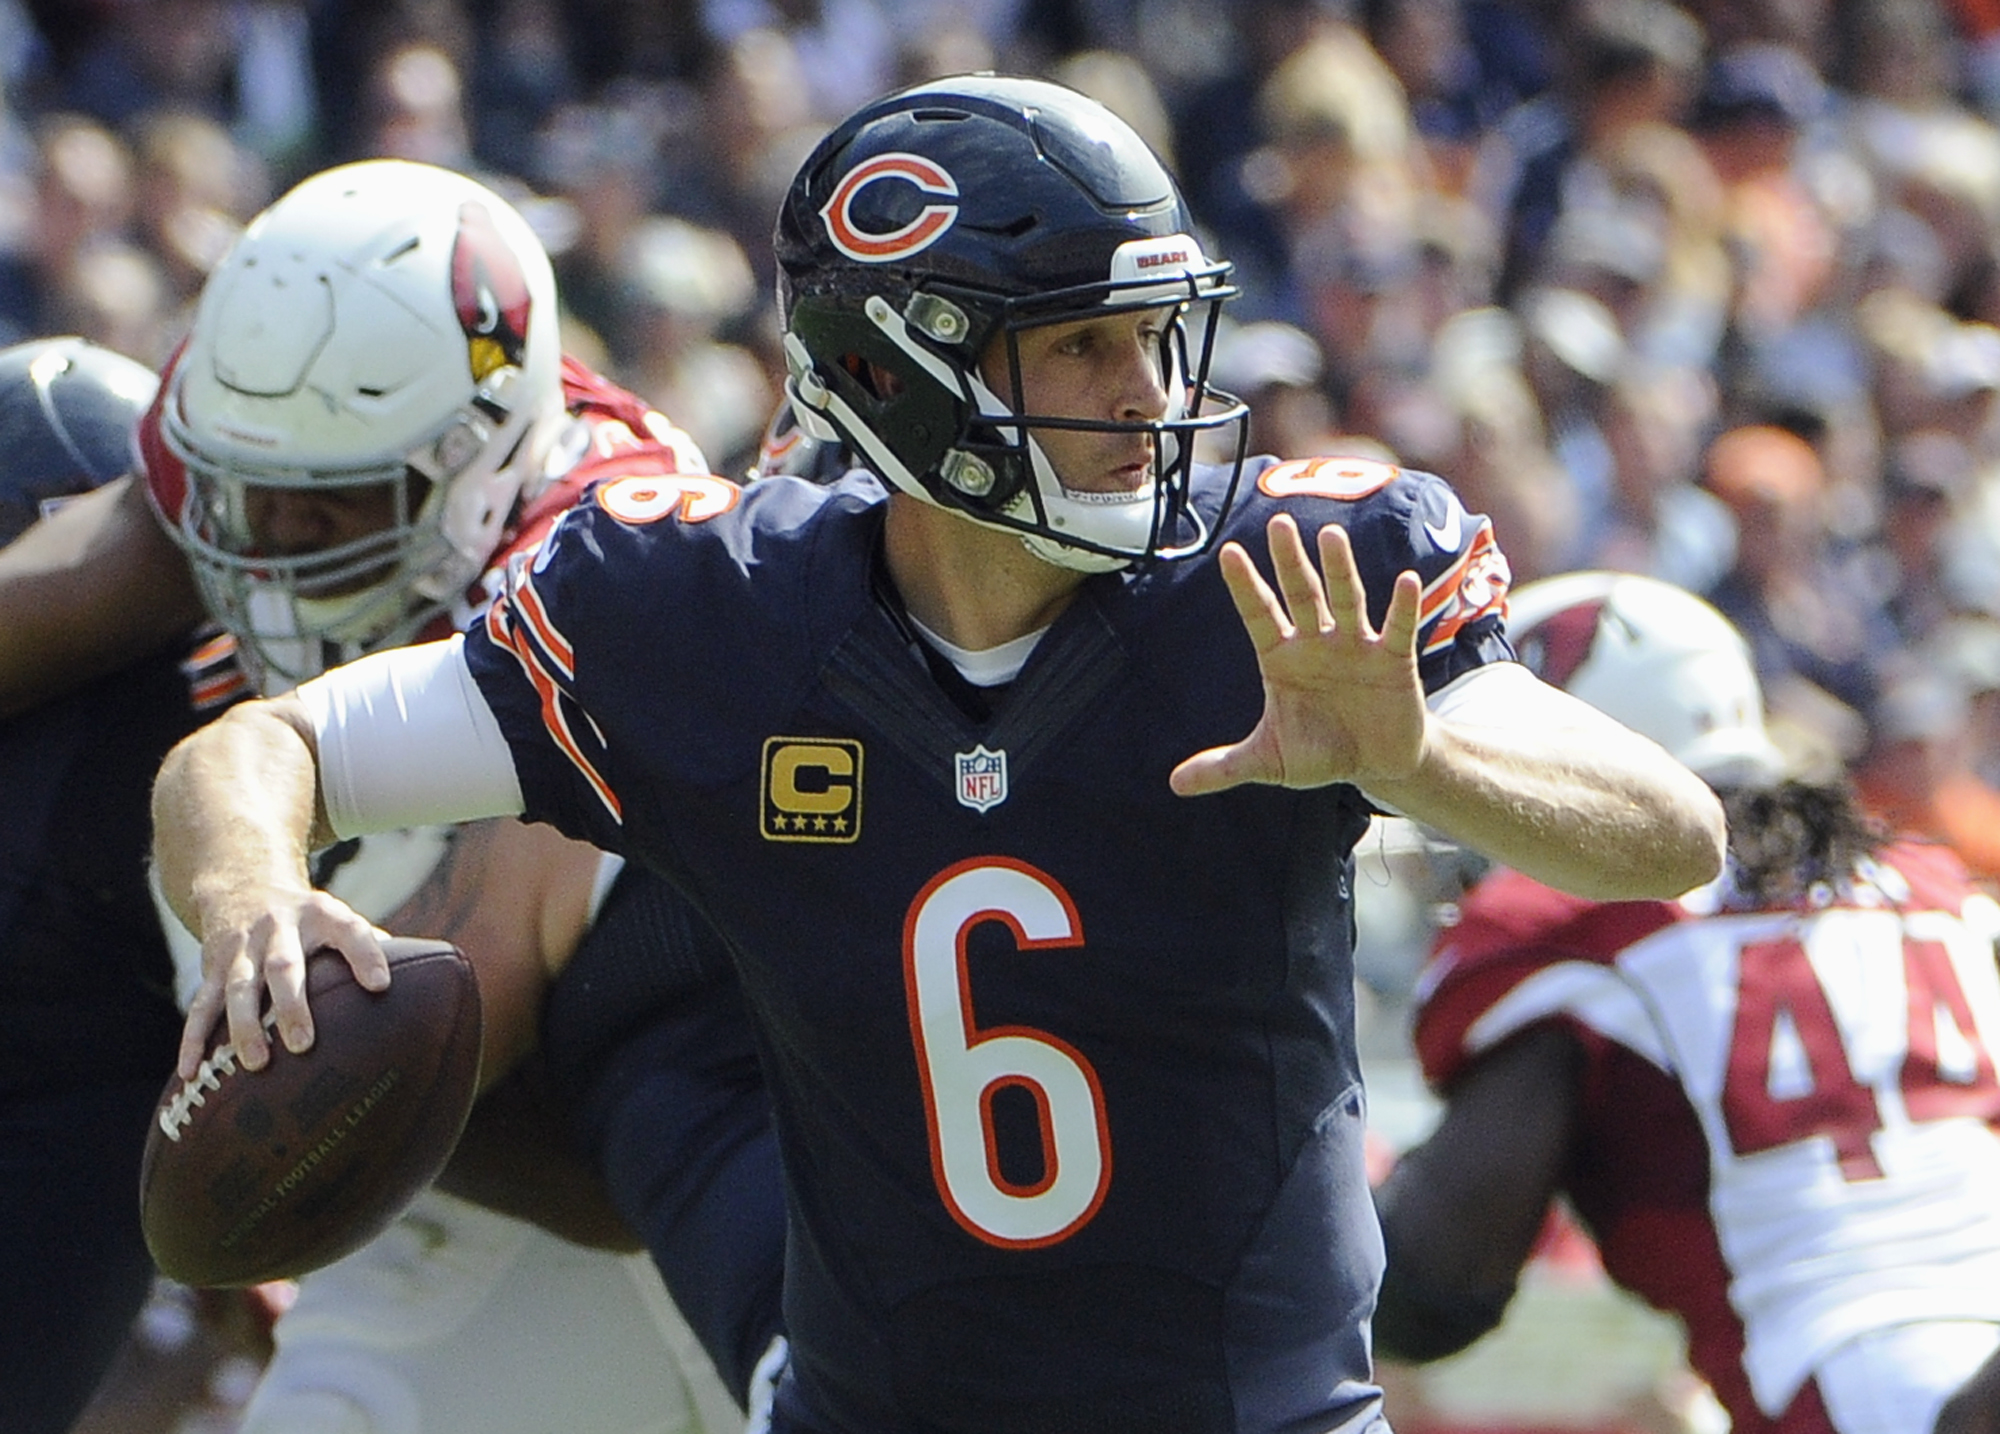 Chicago Bears quarterback Jay Cutler (6) throws a pass during the first half of an NFL football game against the Arizona Cardinals, Sunday, Sept. 20, 2015, in Chicago. (AP Photo/David Banks)